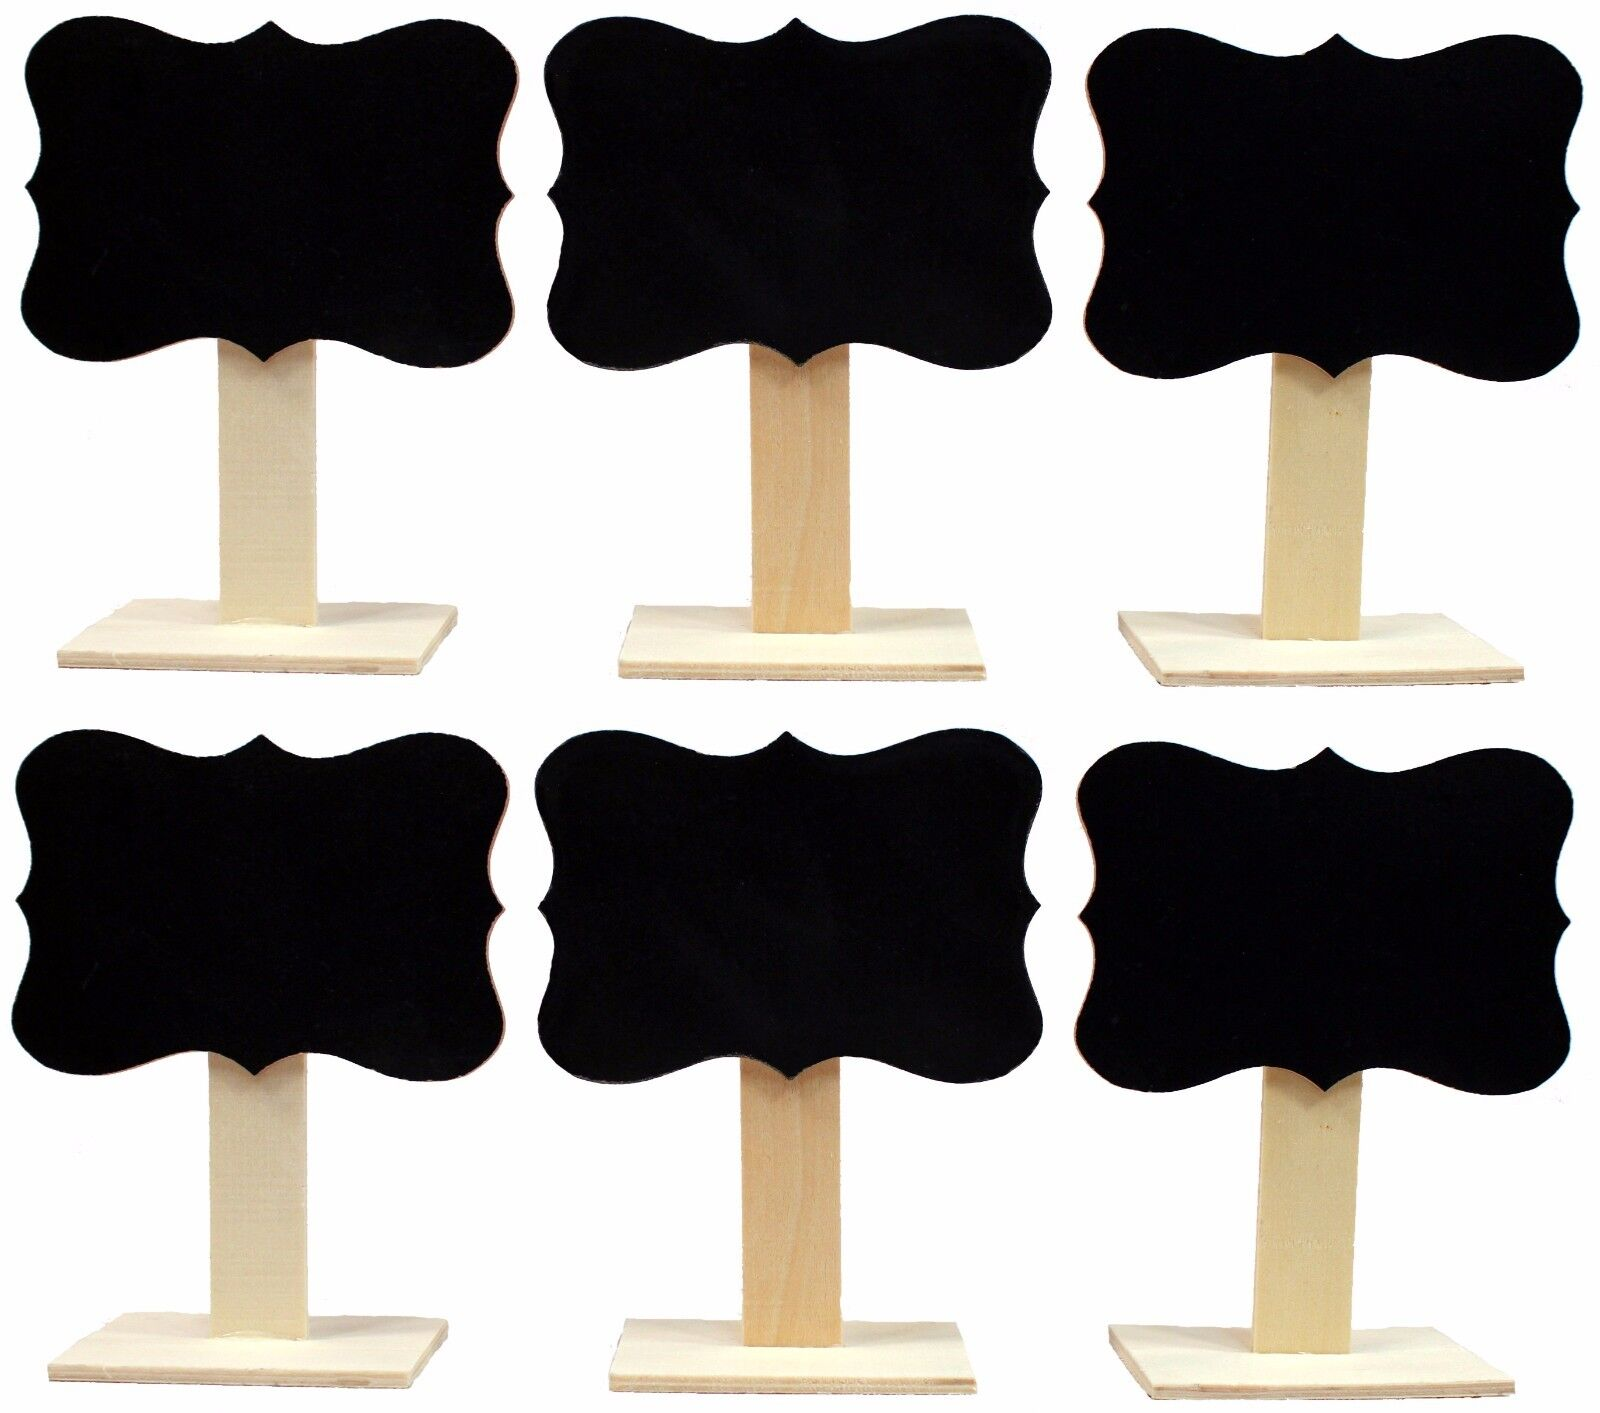 5″ Tall Wood Chalkboard Wedding Dinner Party Table Place Card Signs, Box of 6 Home & Garden